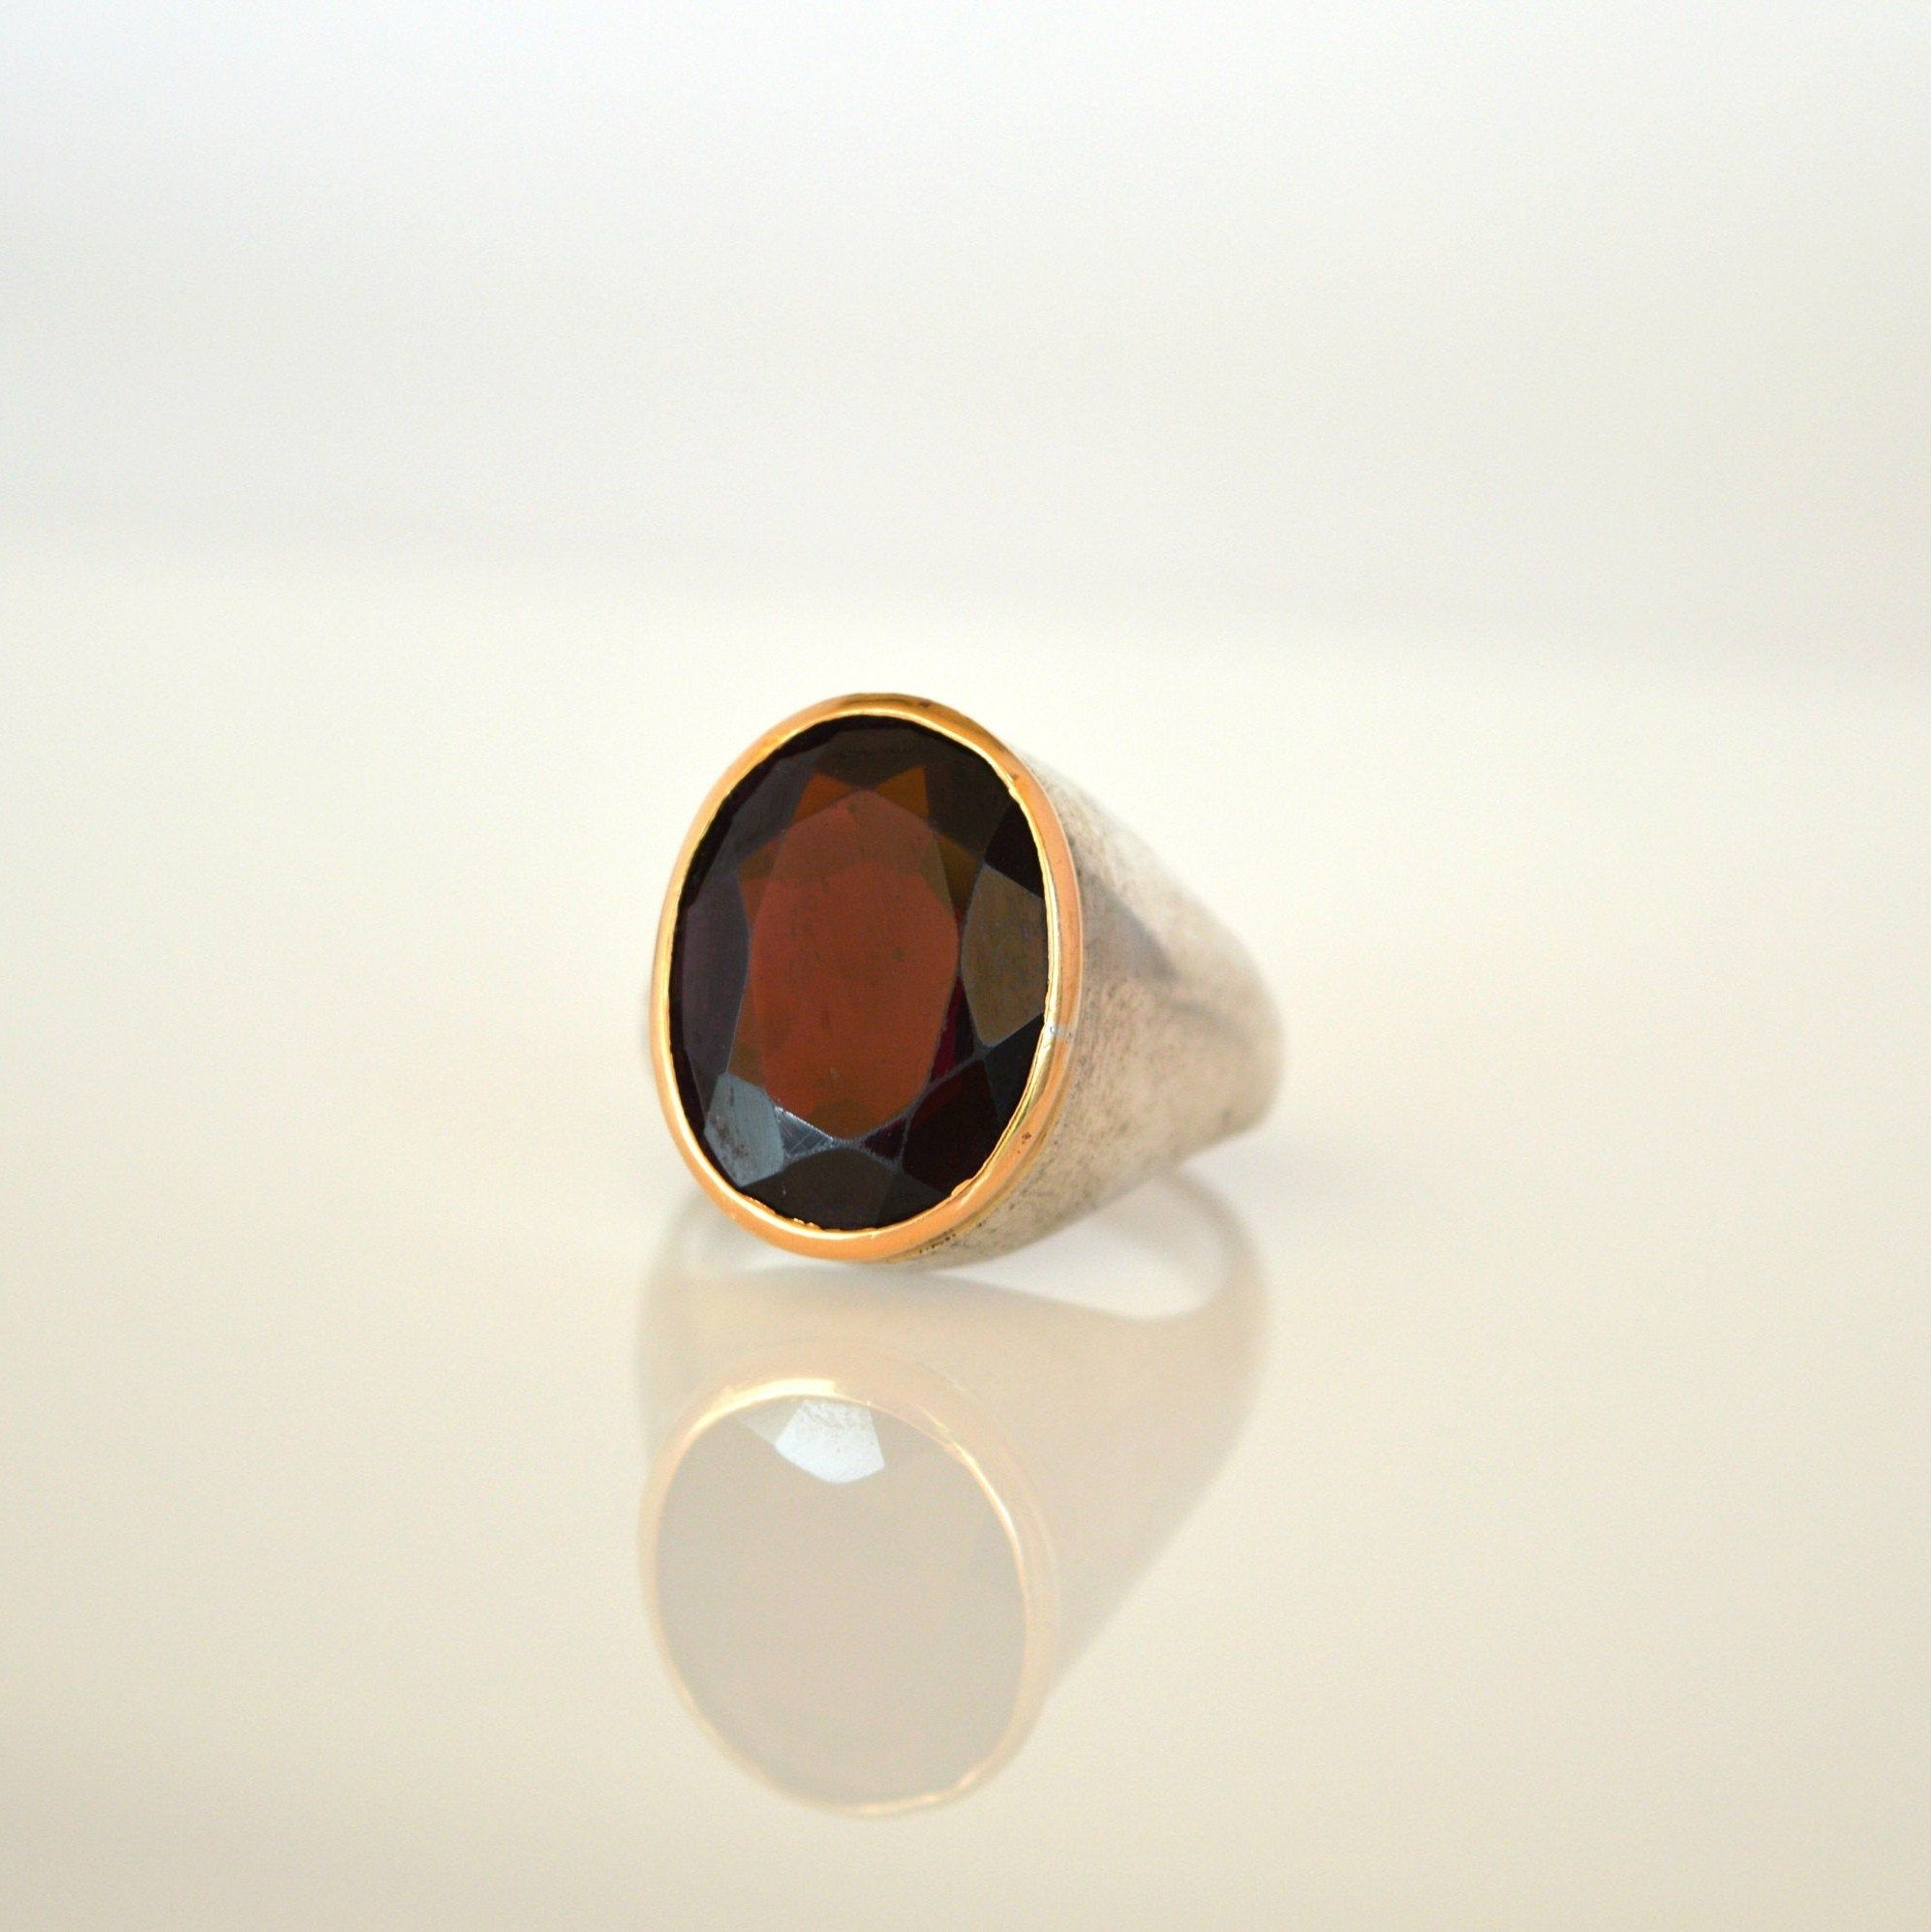 Gifts For Her Large Semi-Precious Gemstone Gold Rings Triple Gemstone Gold Large Statement Rings Gemstone Statement Rings